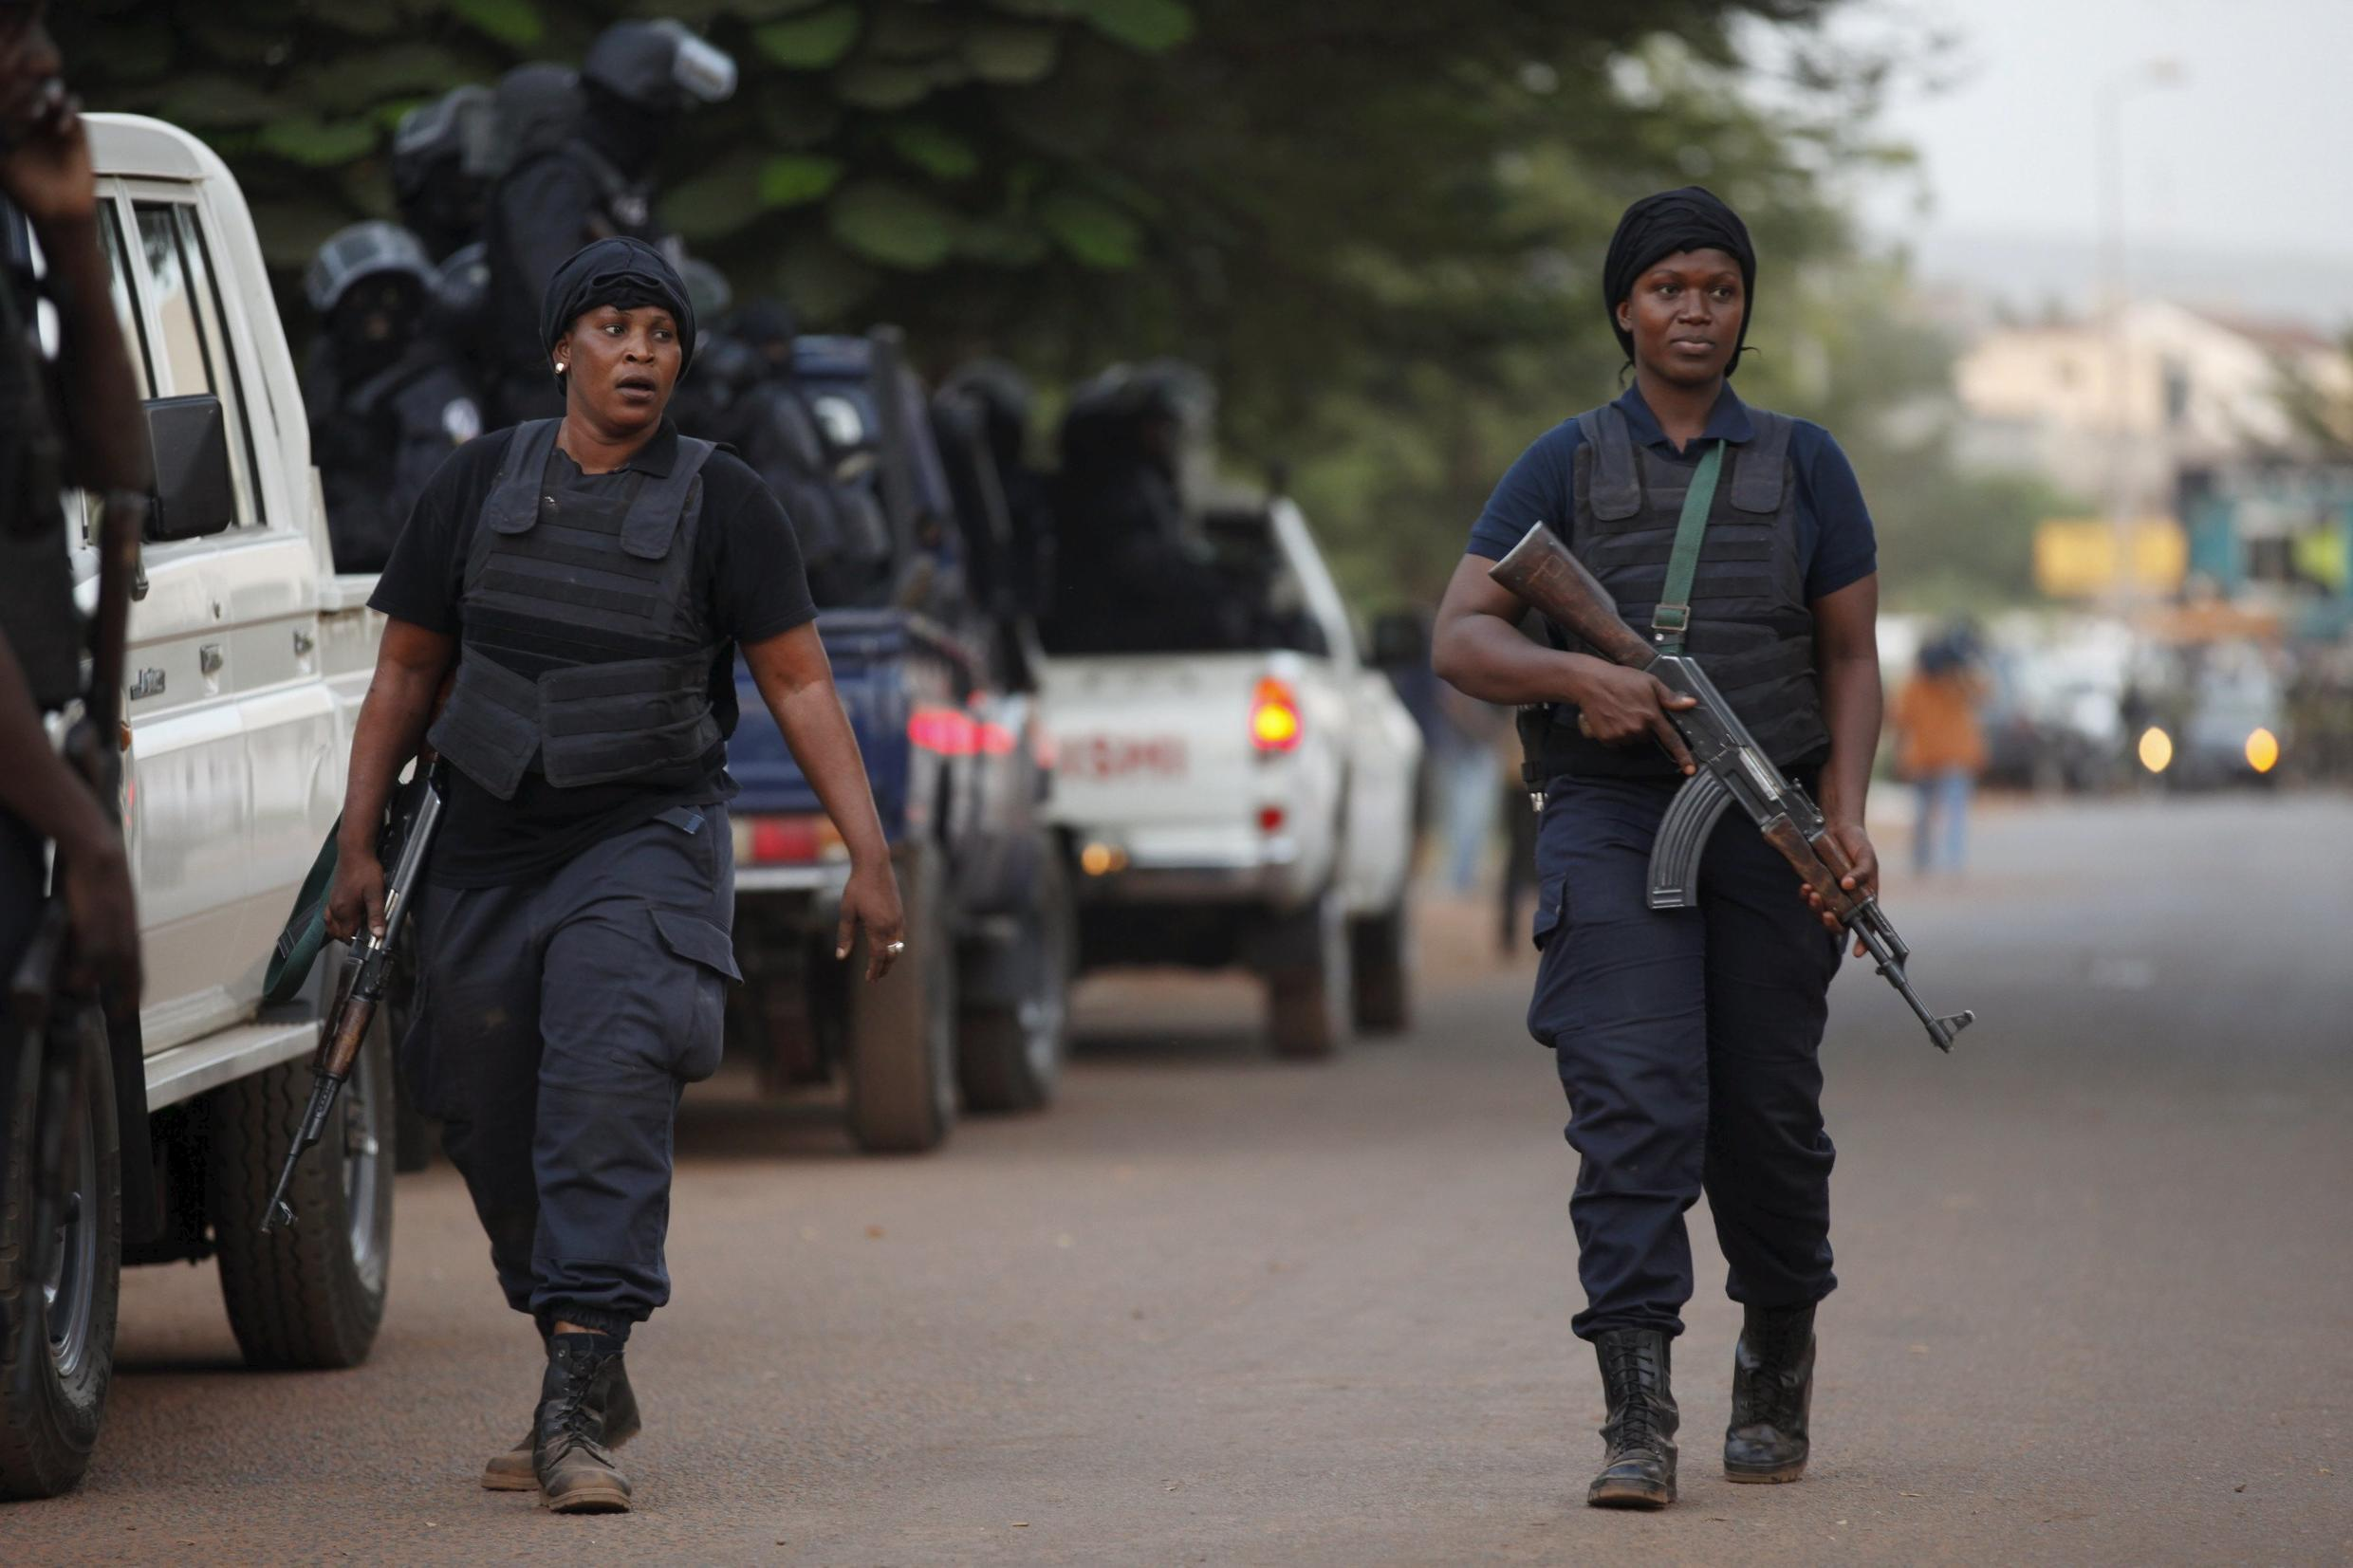 Malian secuirty forces in front of the Radisson Blu in Bamako on 20 November 2015.